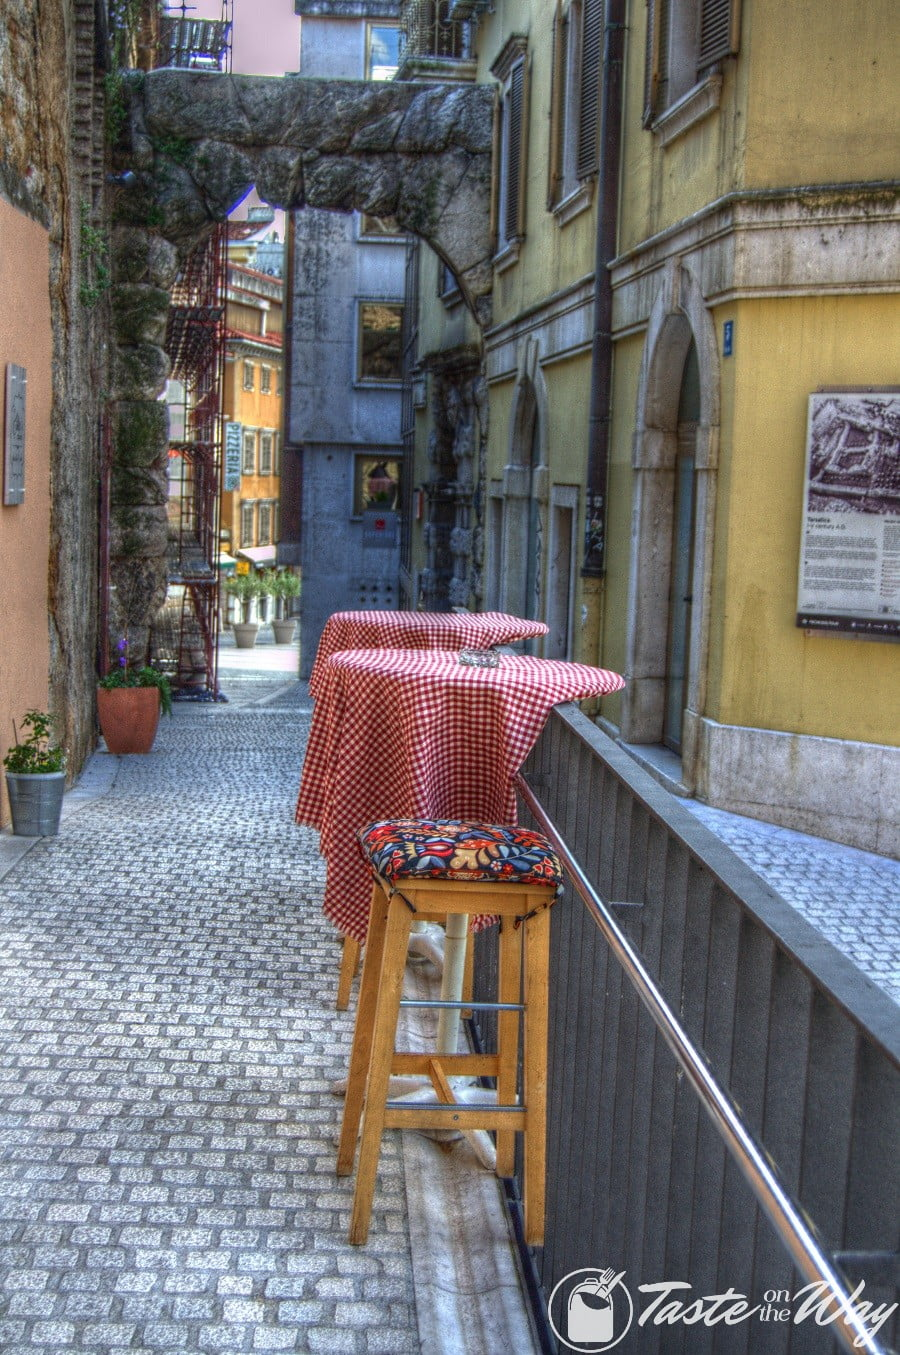 Check out these stunning pictures of cafes in Rijeka, #Croatia #photography #hdr #travel @tasteontheway